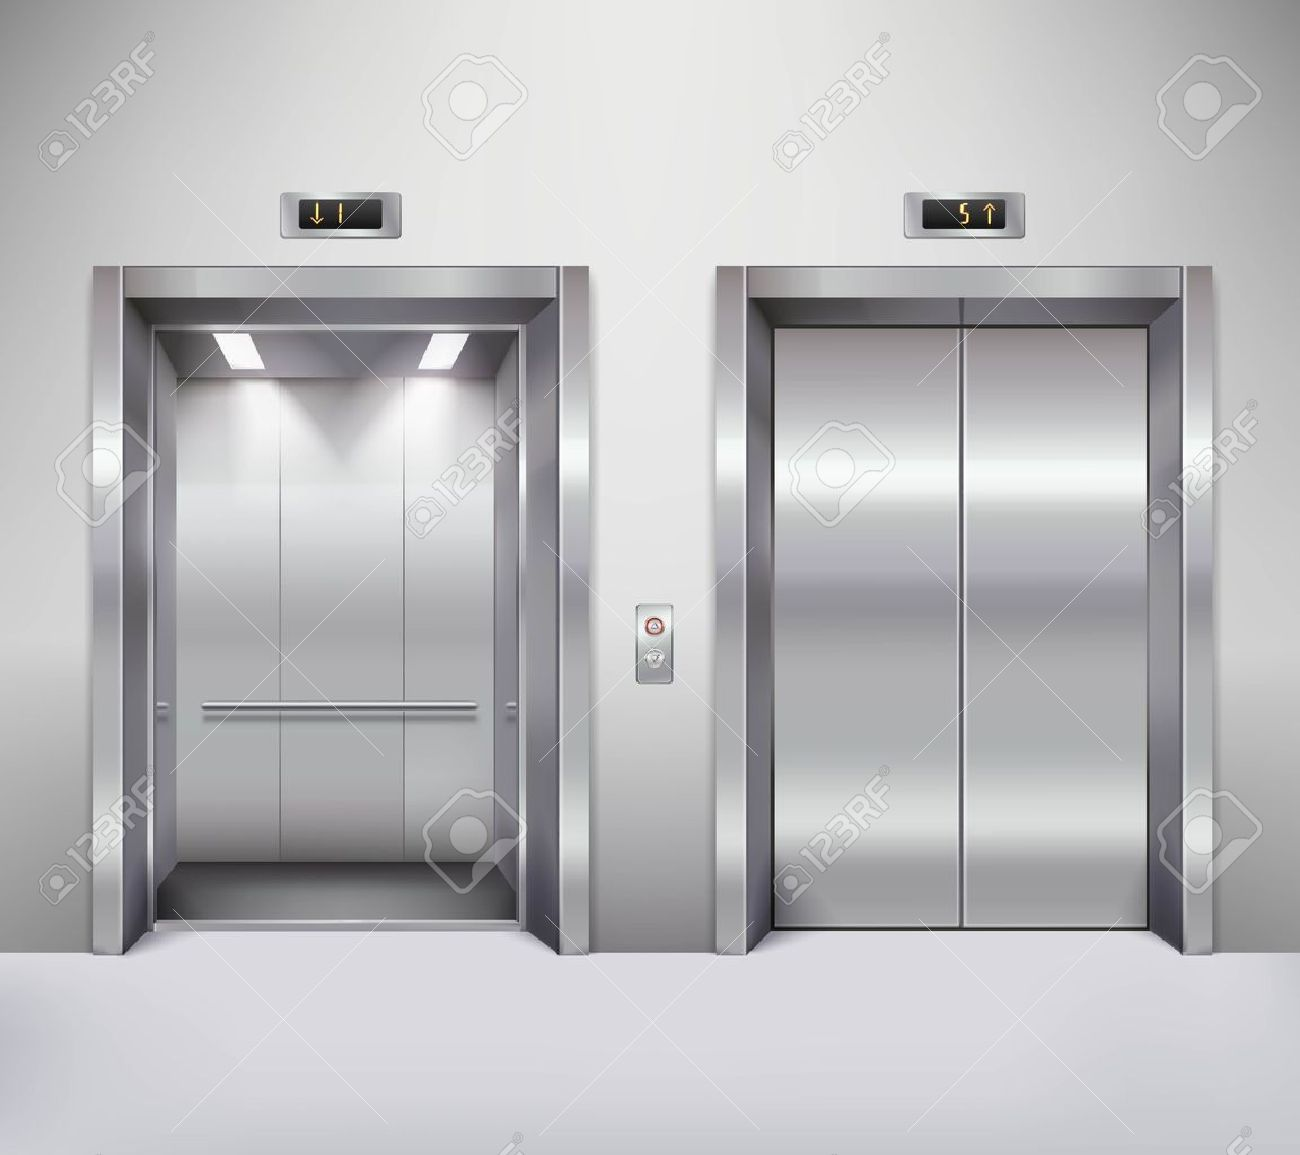 Open and closed chrome metal office building elevator doors realistic vector illustration - 51757439